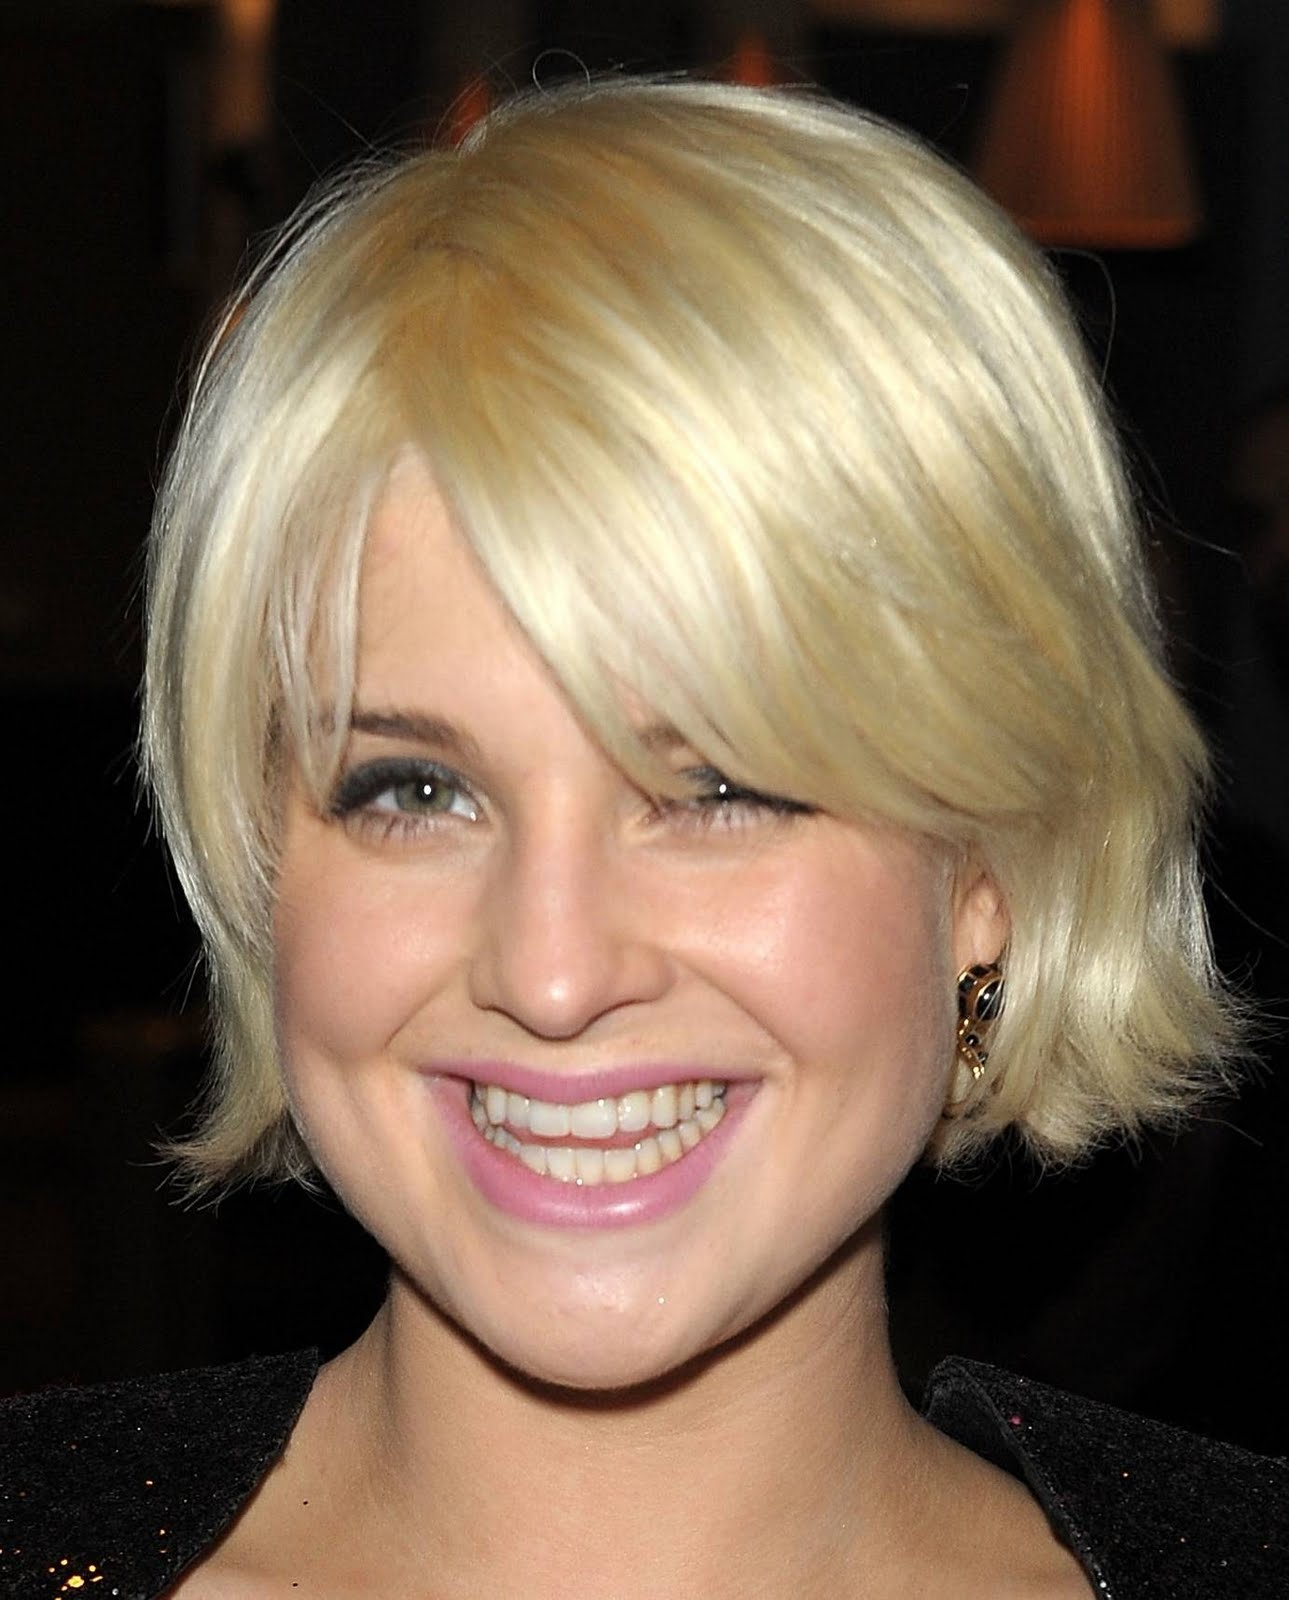 The Cool Really Short Celebrity Hairstyles Photo